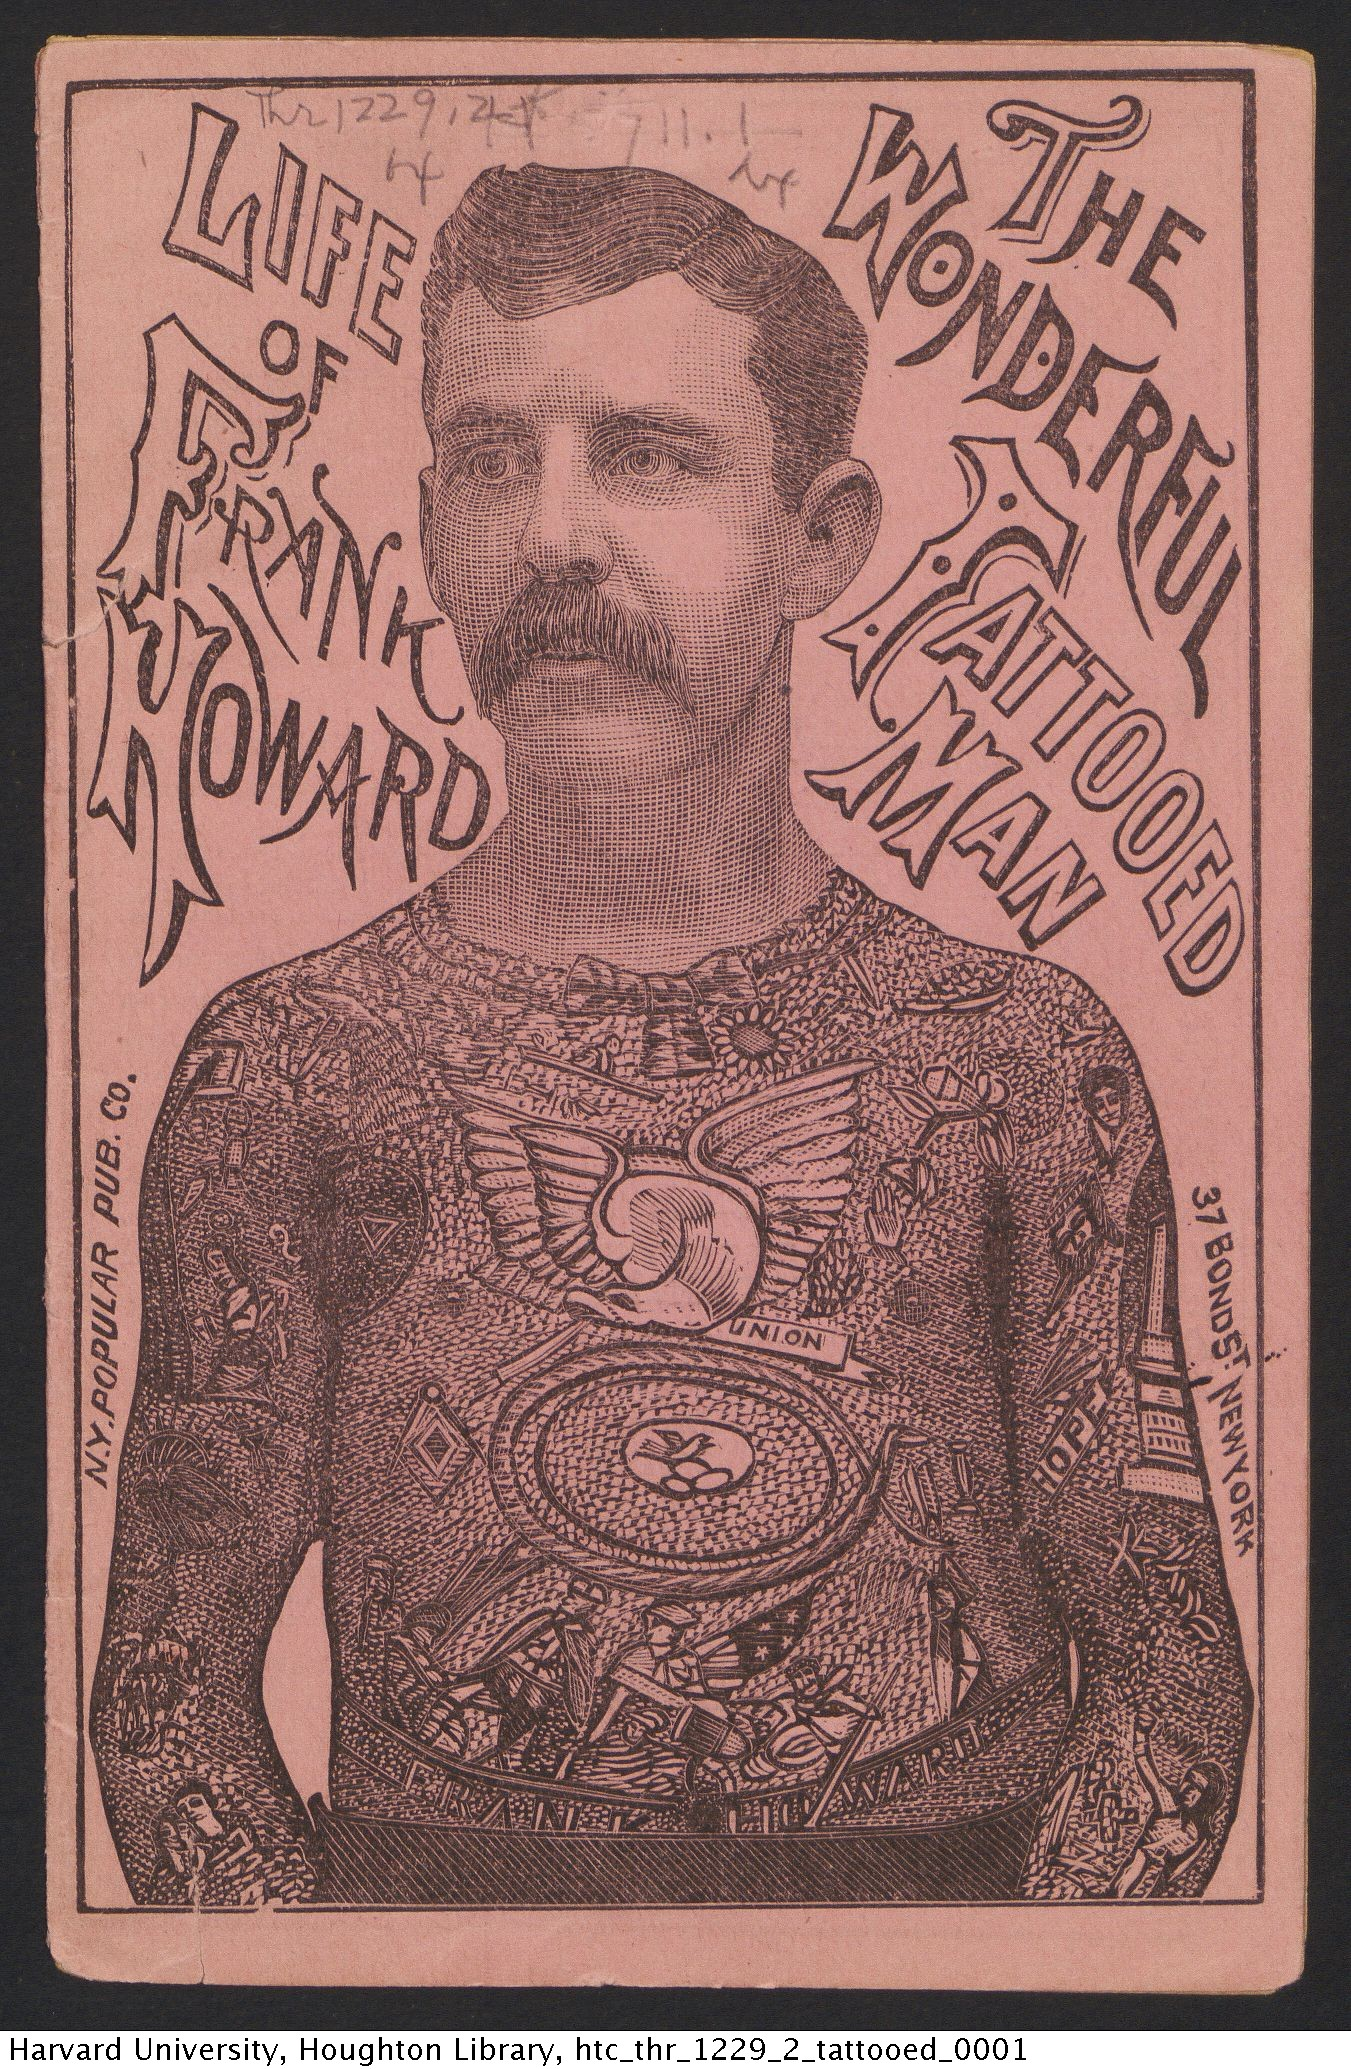 Life of Frank Howard, the most wonderful tattooed man ever known in the civilzed world : a sketch of his life and the manner in which he became tattooed. New York : New York Popular Publishing Co., [188-?] Thr 1229.2. Houghton Library, Harvard University